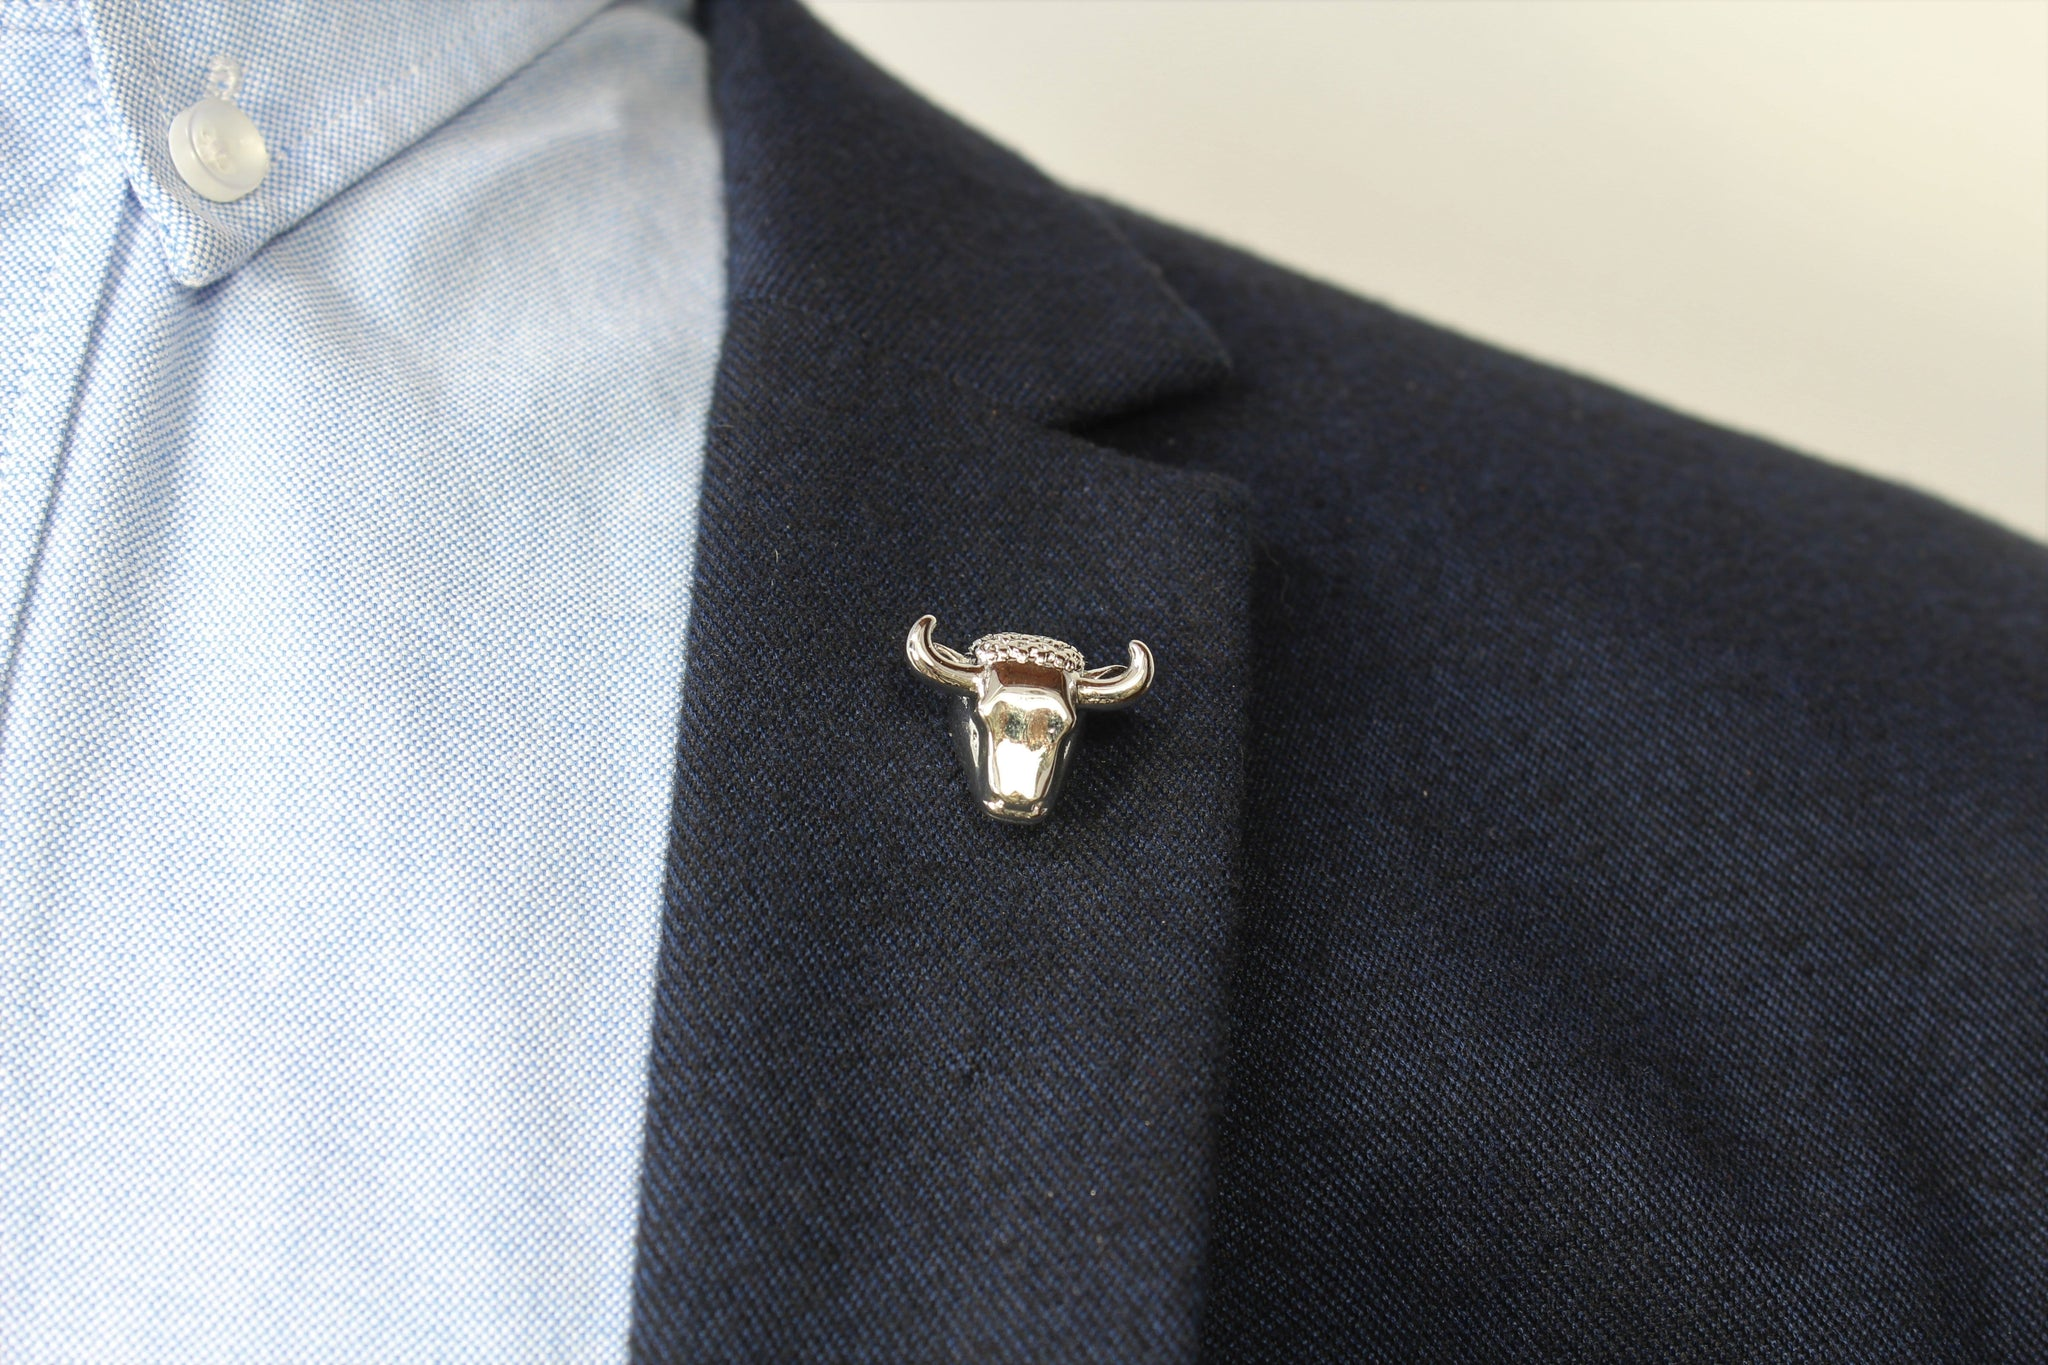 Bull Head Lapel Pin on blazer - Stolen Riches